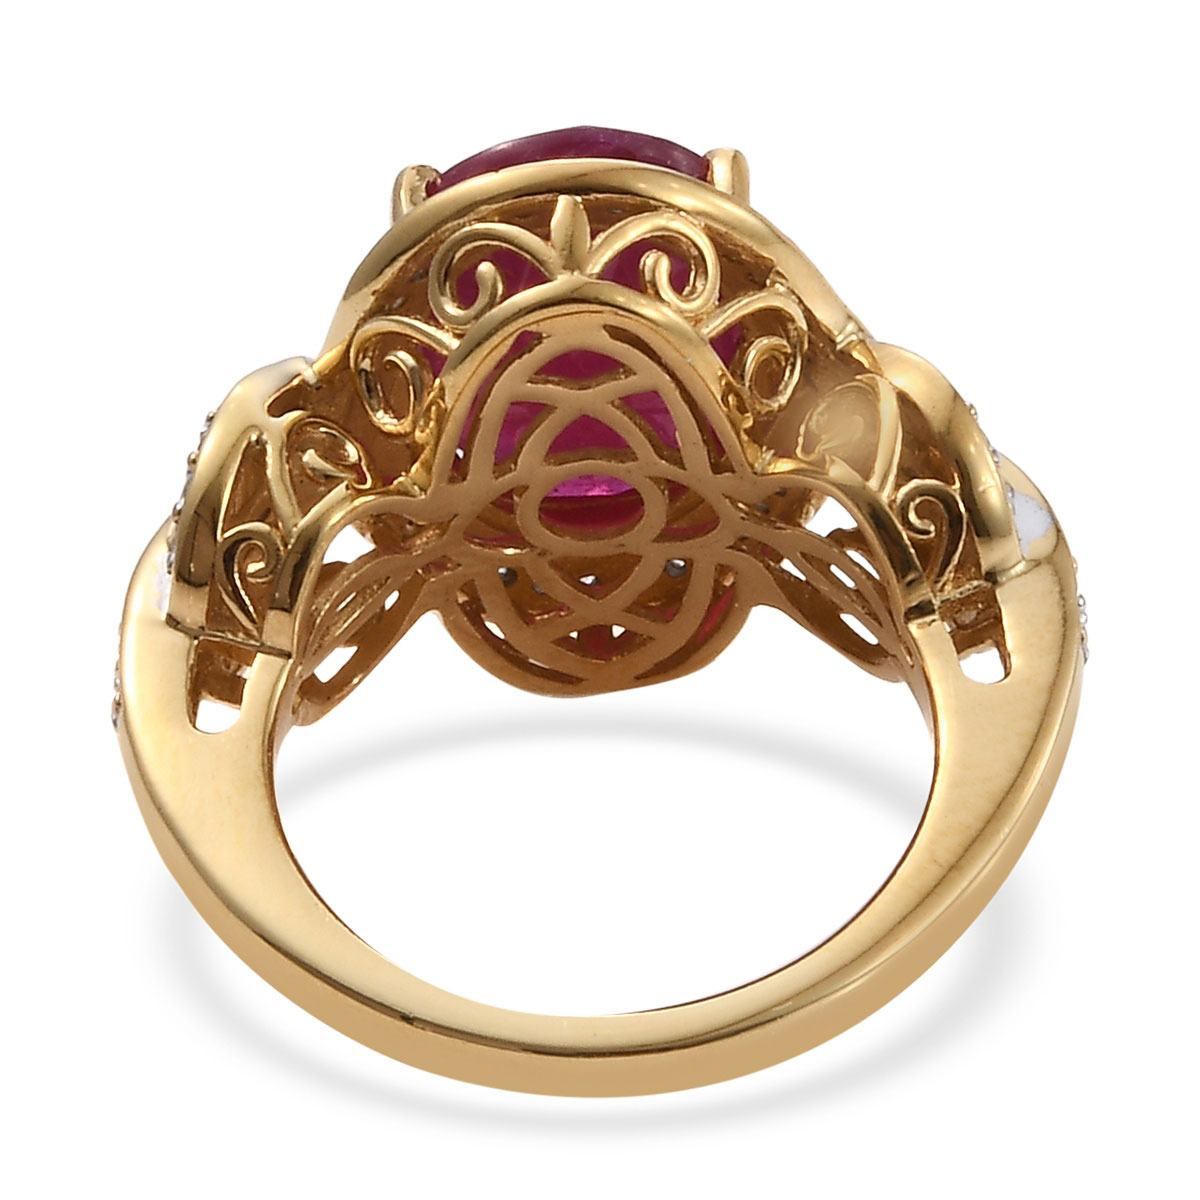 Niassa Ruby, Zircon Ring in Vermeil YG Over Sterling Silver (Size 10.0) 9.08 ctw